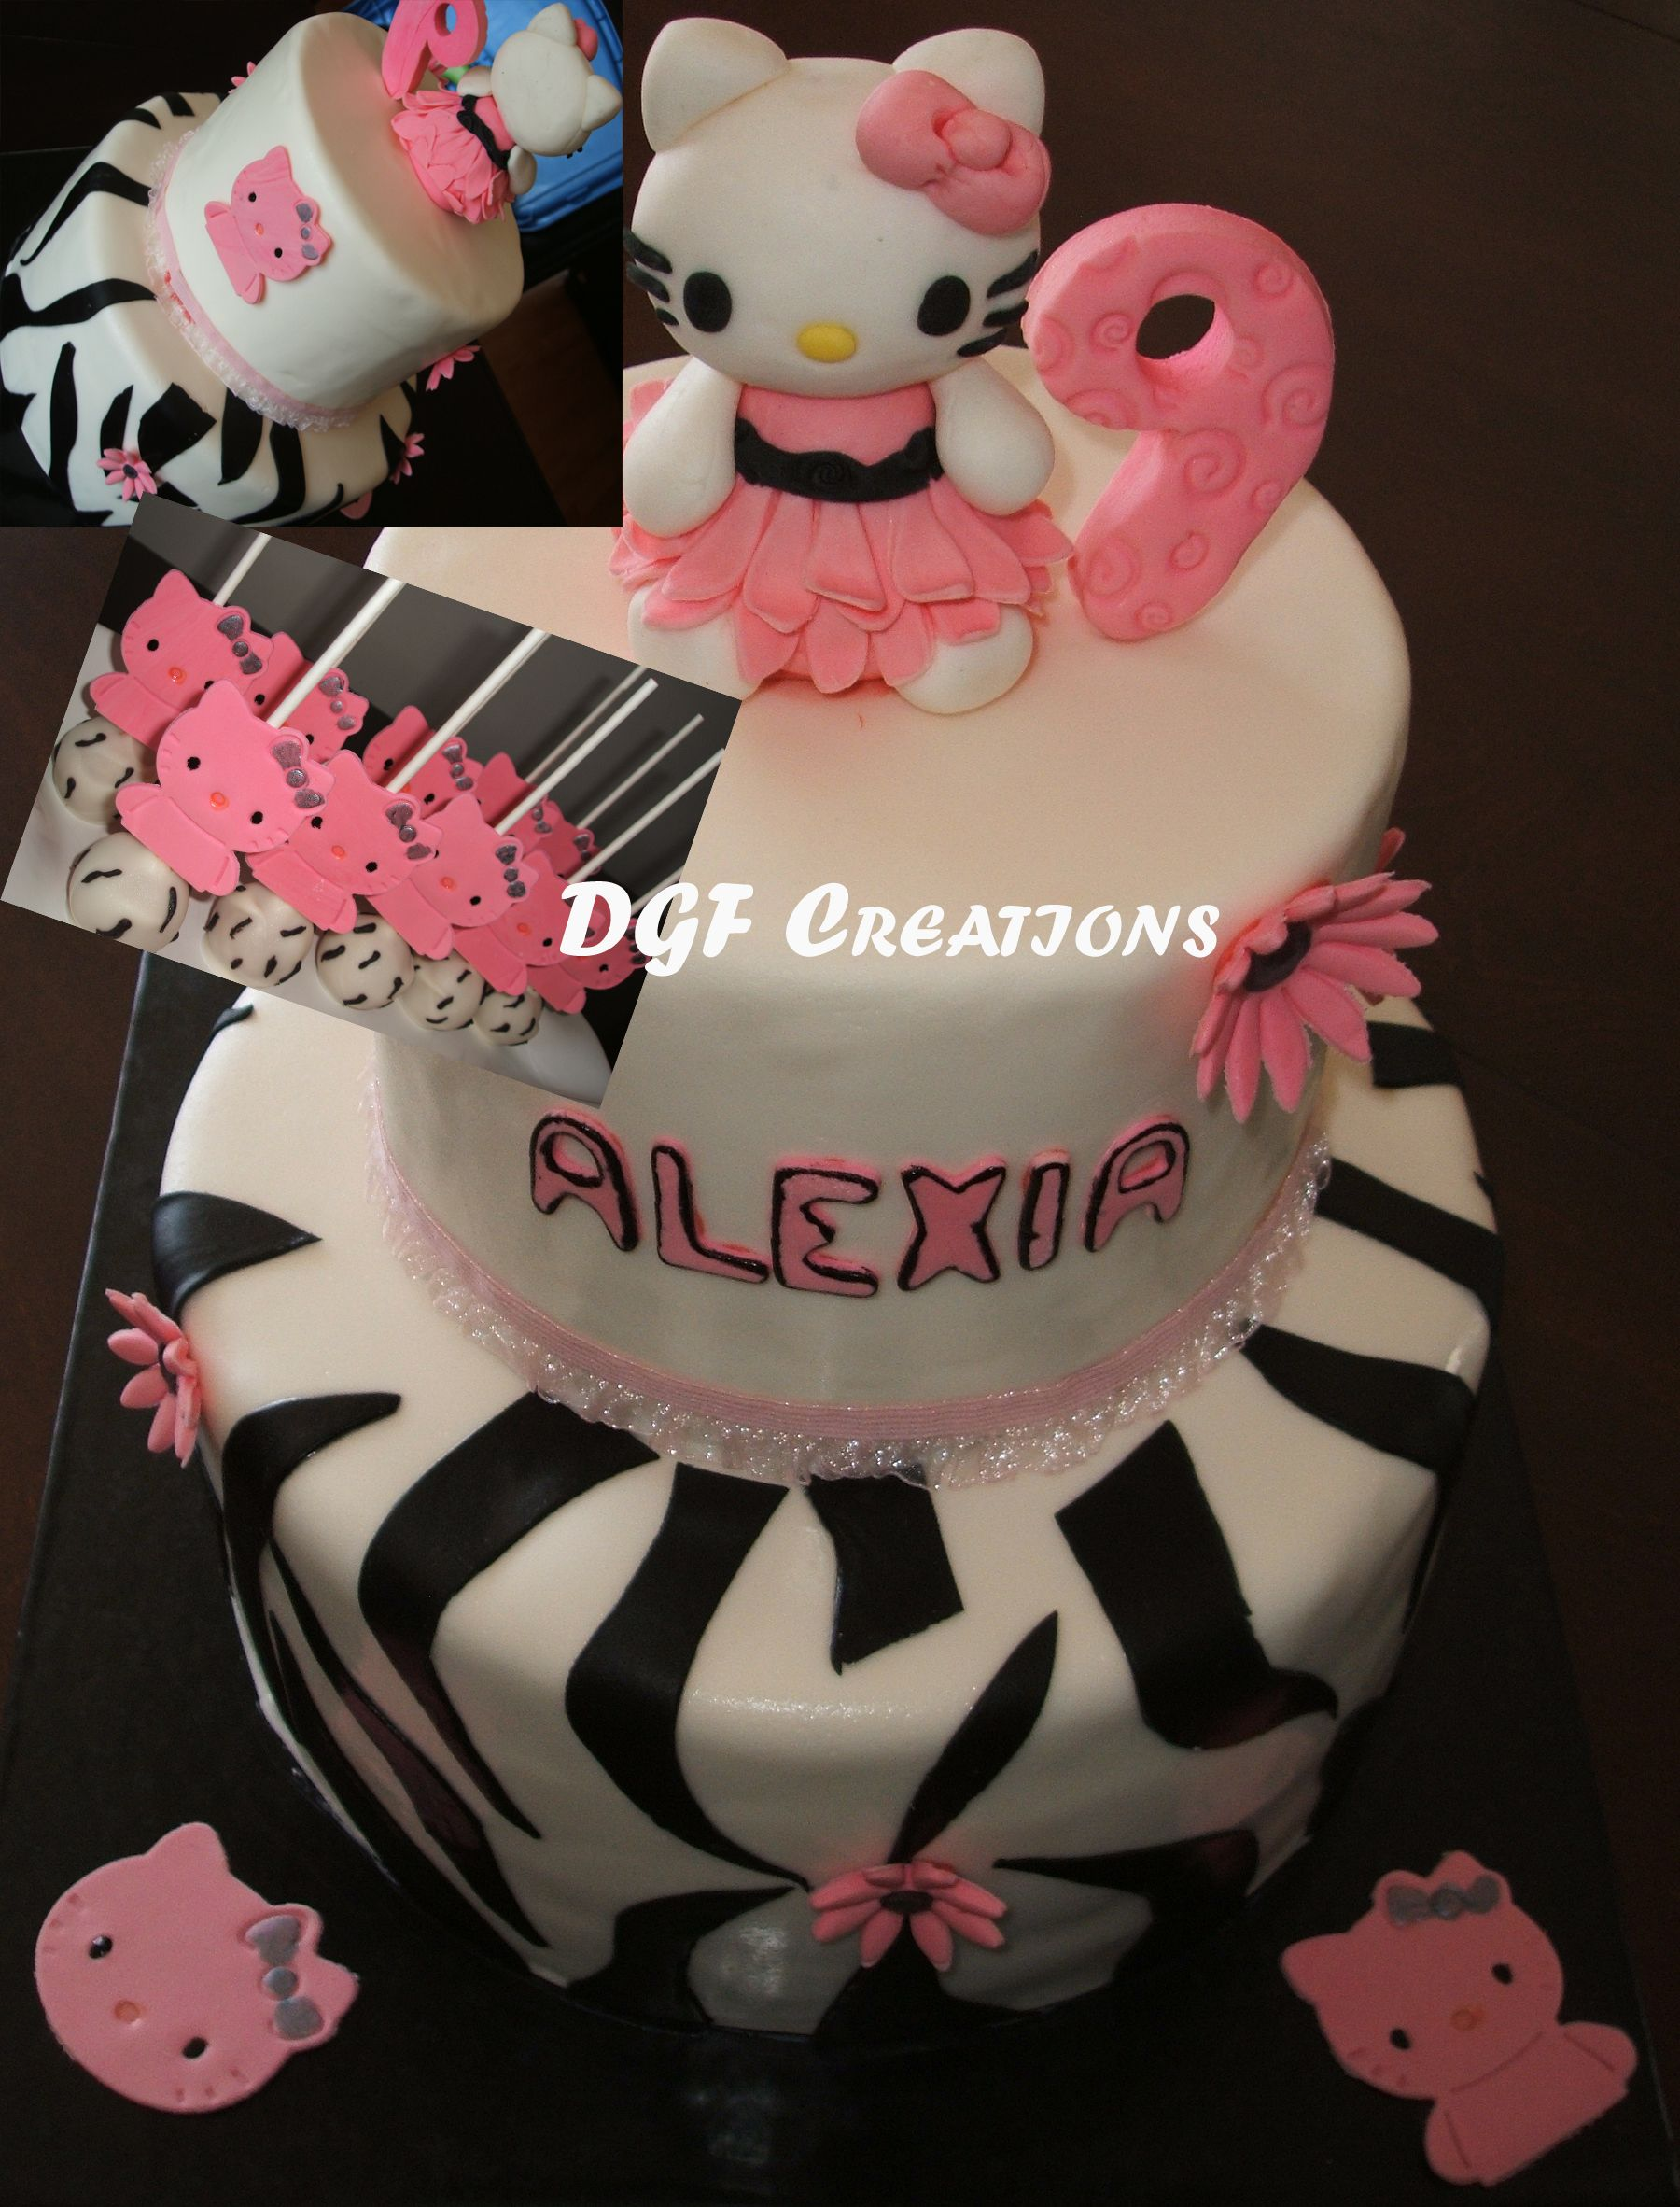 Beautiful 2 Tier Cake With Hello Kitty And Zebra Prints